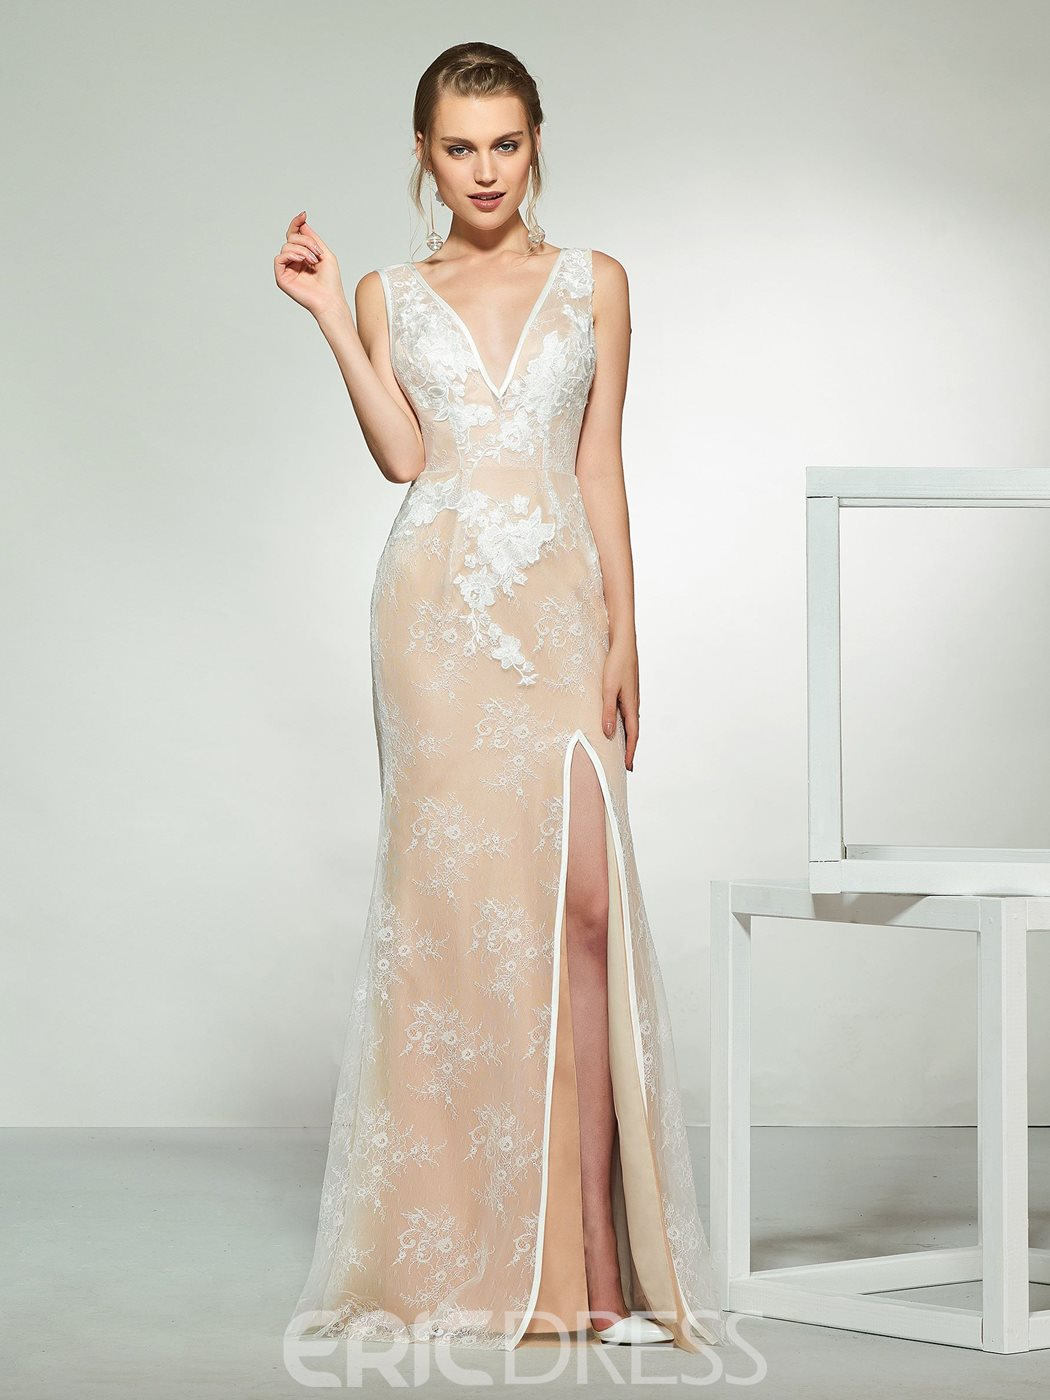 Ericdress Lace Sheath Wedding Dress with Cape